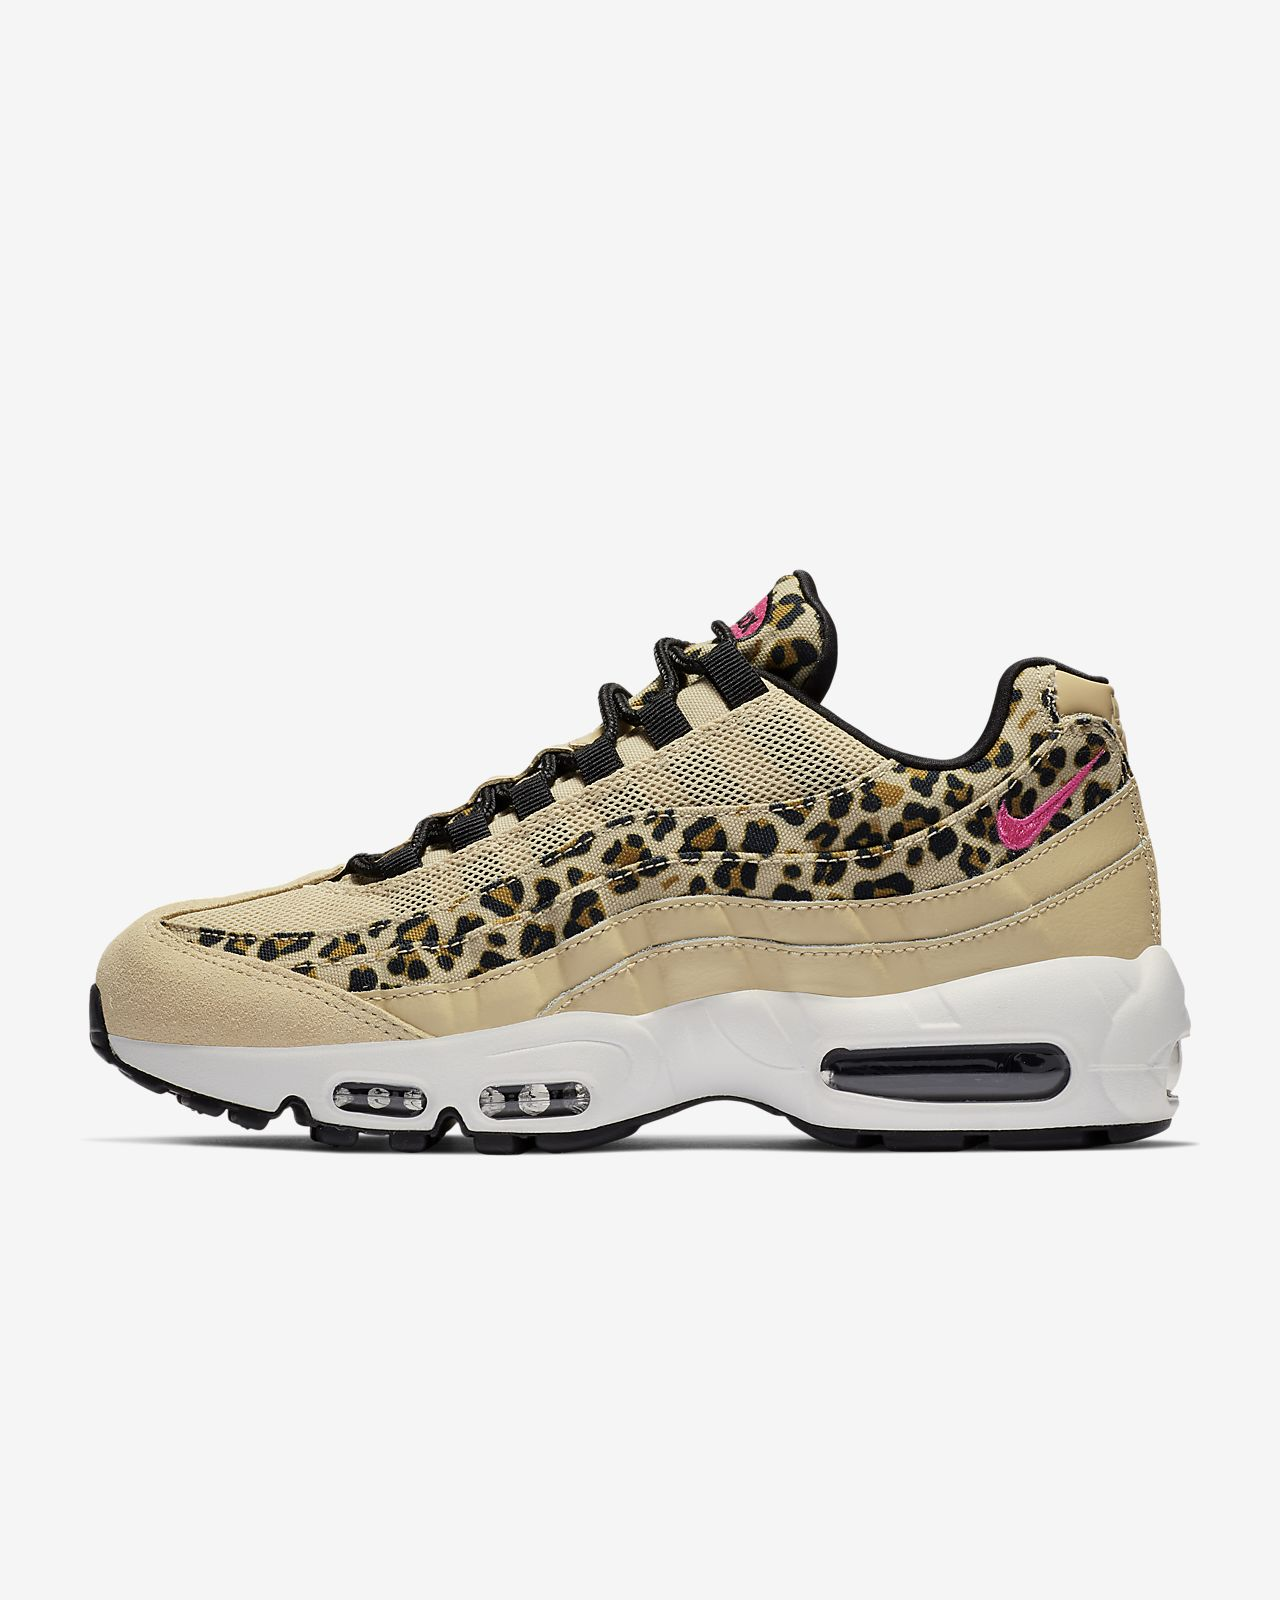 official photos c5a09 1a317 ... Chaussure Nike Air Max 95 Premium Animal pour Femme